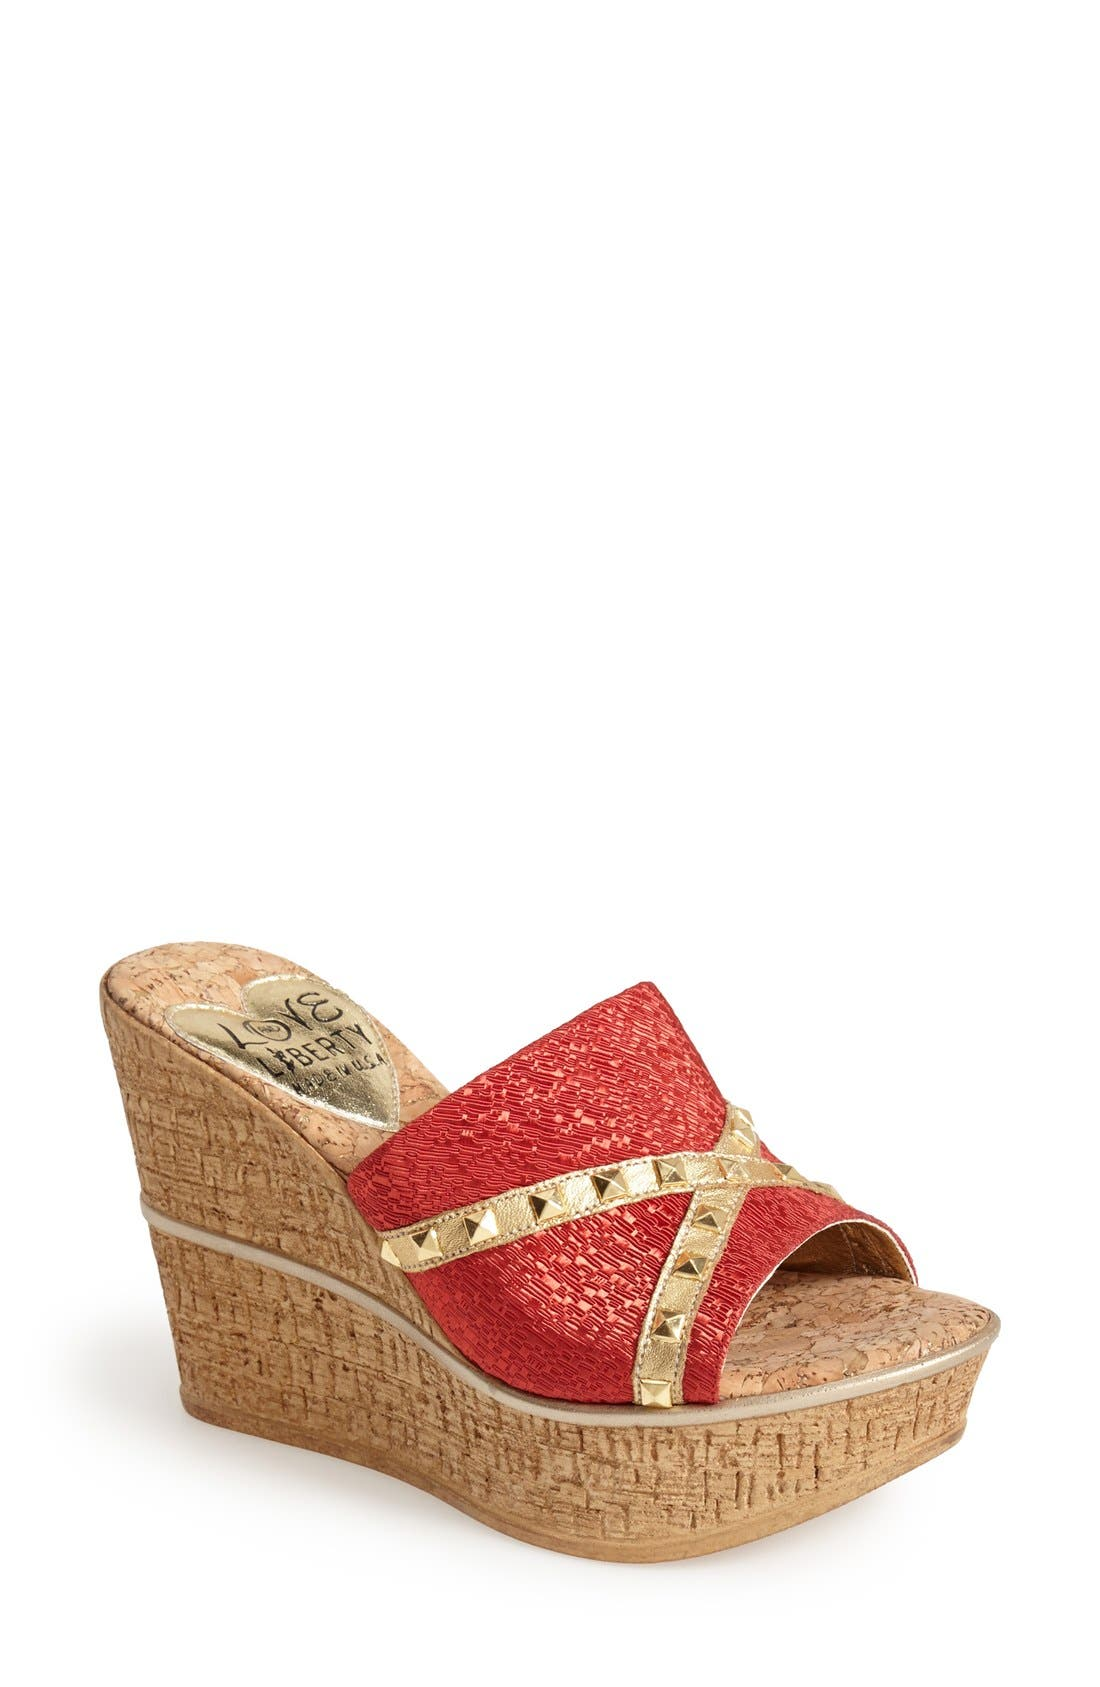 Alternate Image 1 Selected - Love and Liberty 'Margo' Wedge Slide Sandal (Women)